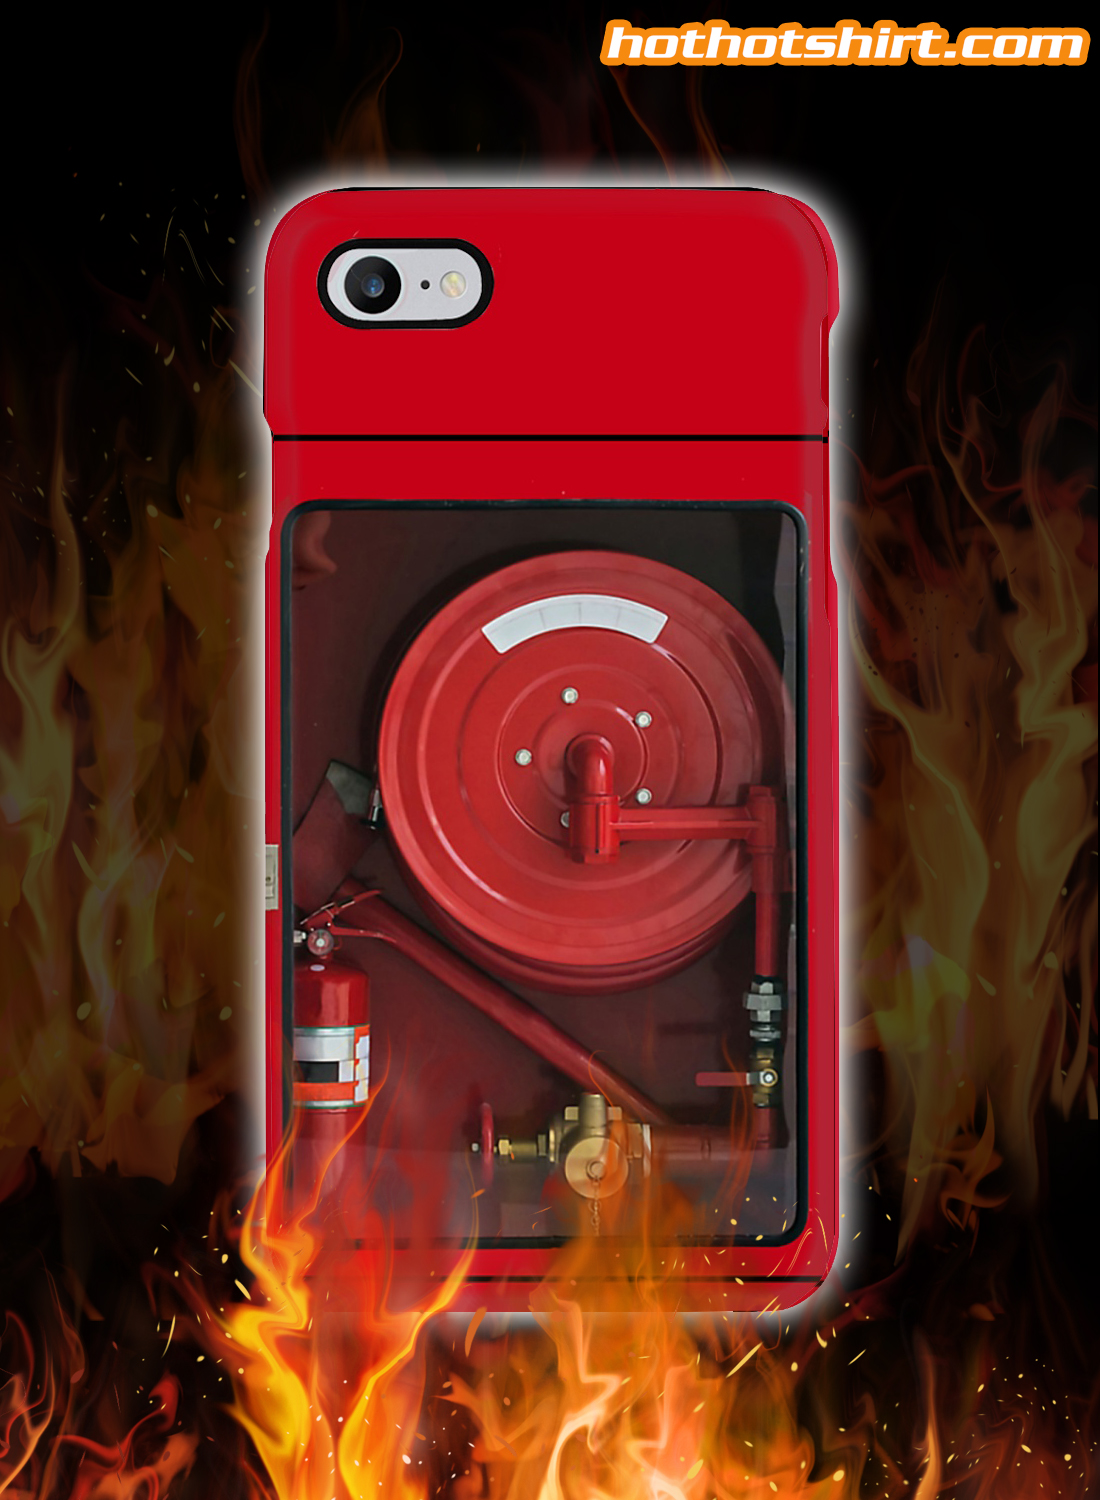 Firefighters hose phone case